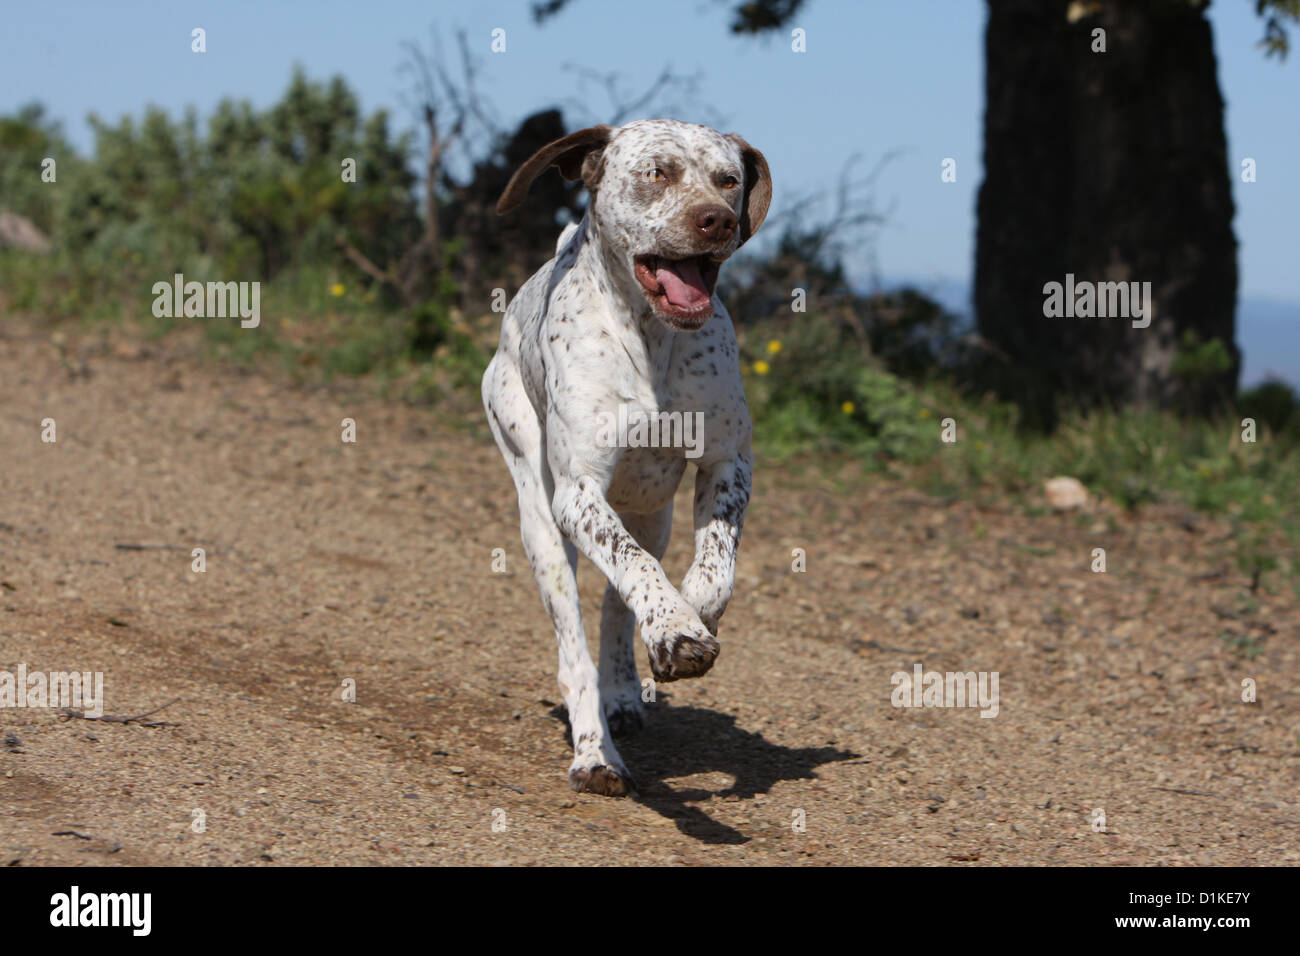 Dog Braque du Bourbonnais / Bourbonnais Pointing Dog  adult running Stock Photo